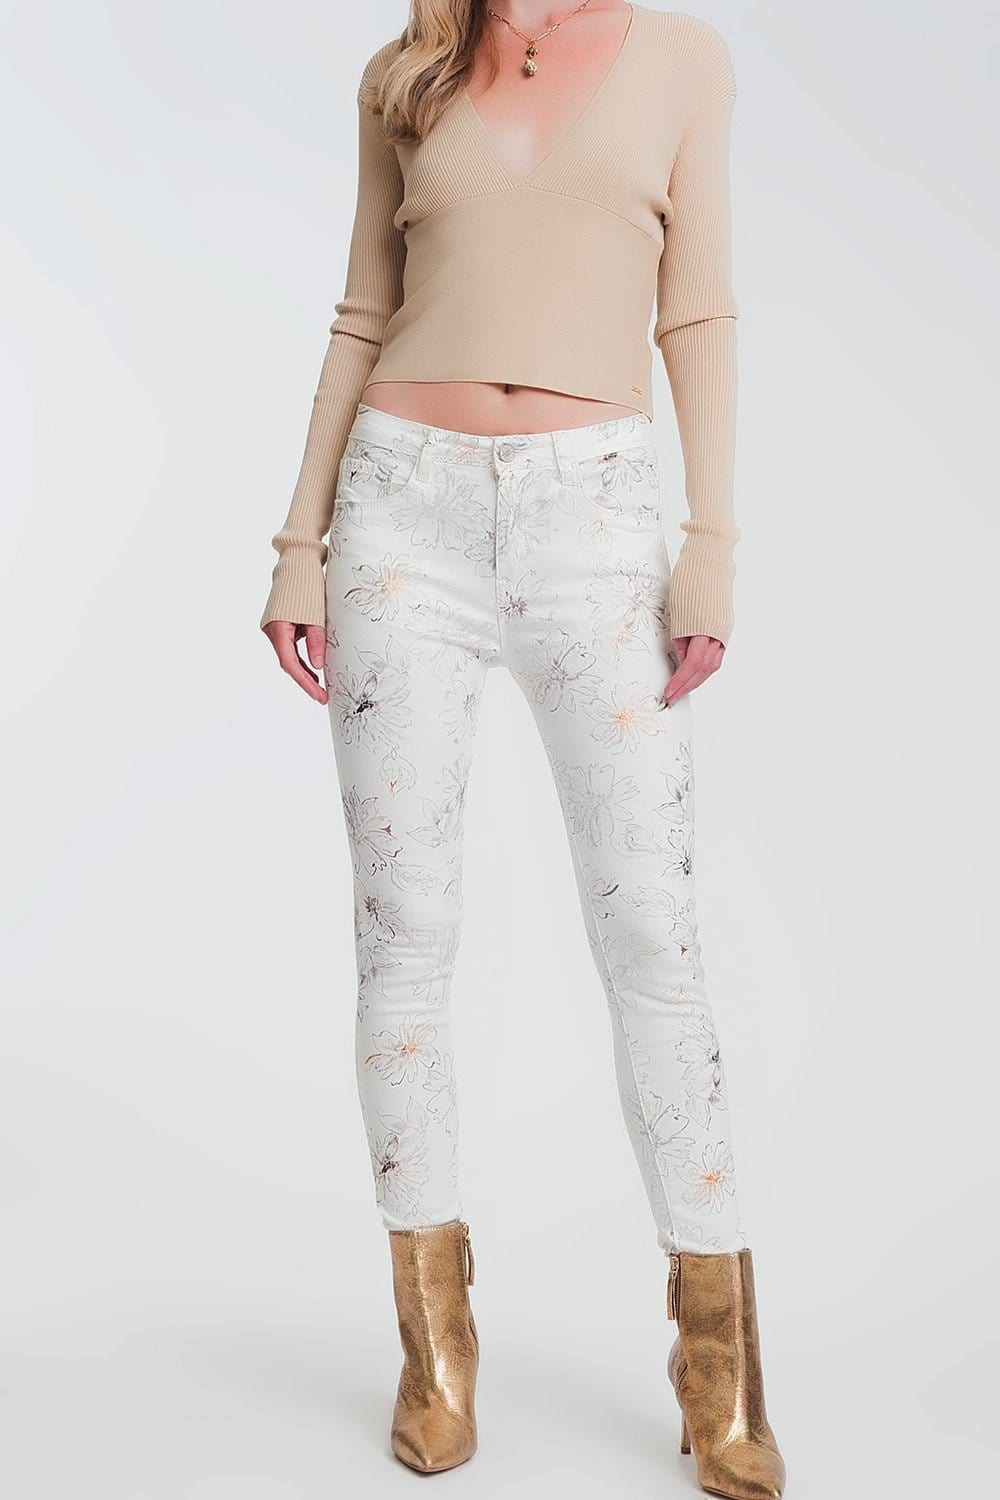 Q2 white skinny jeans with floral pattern